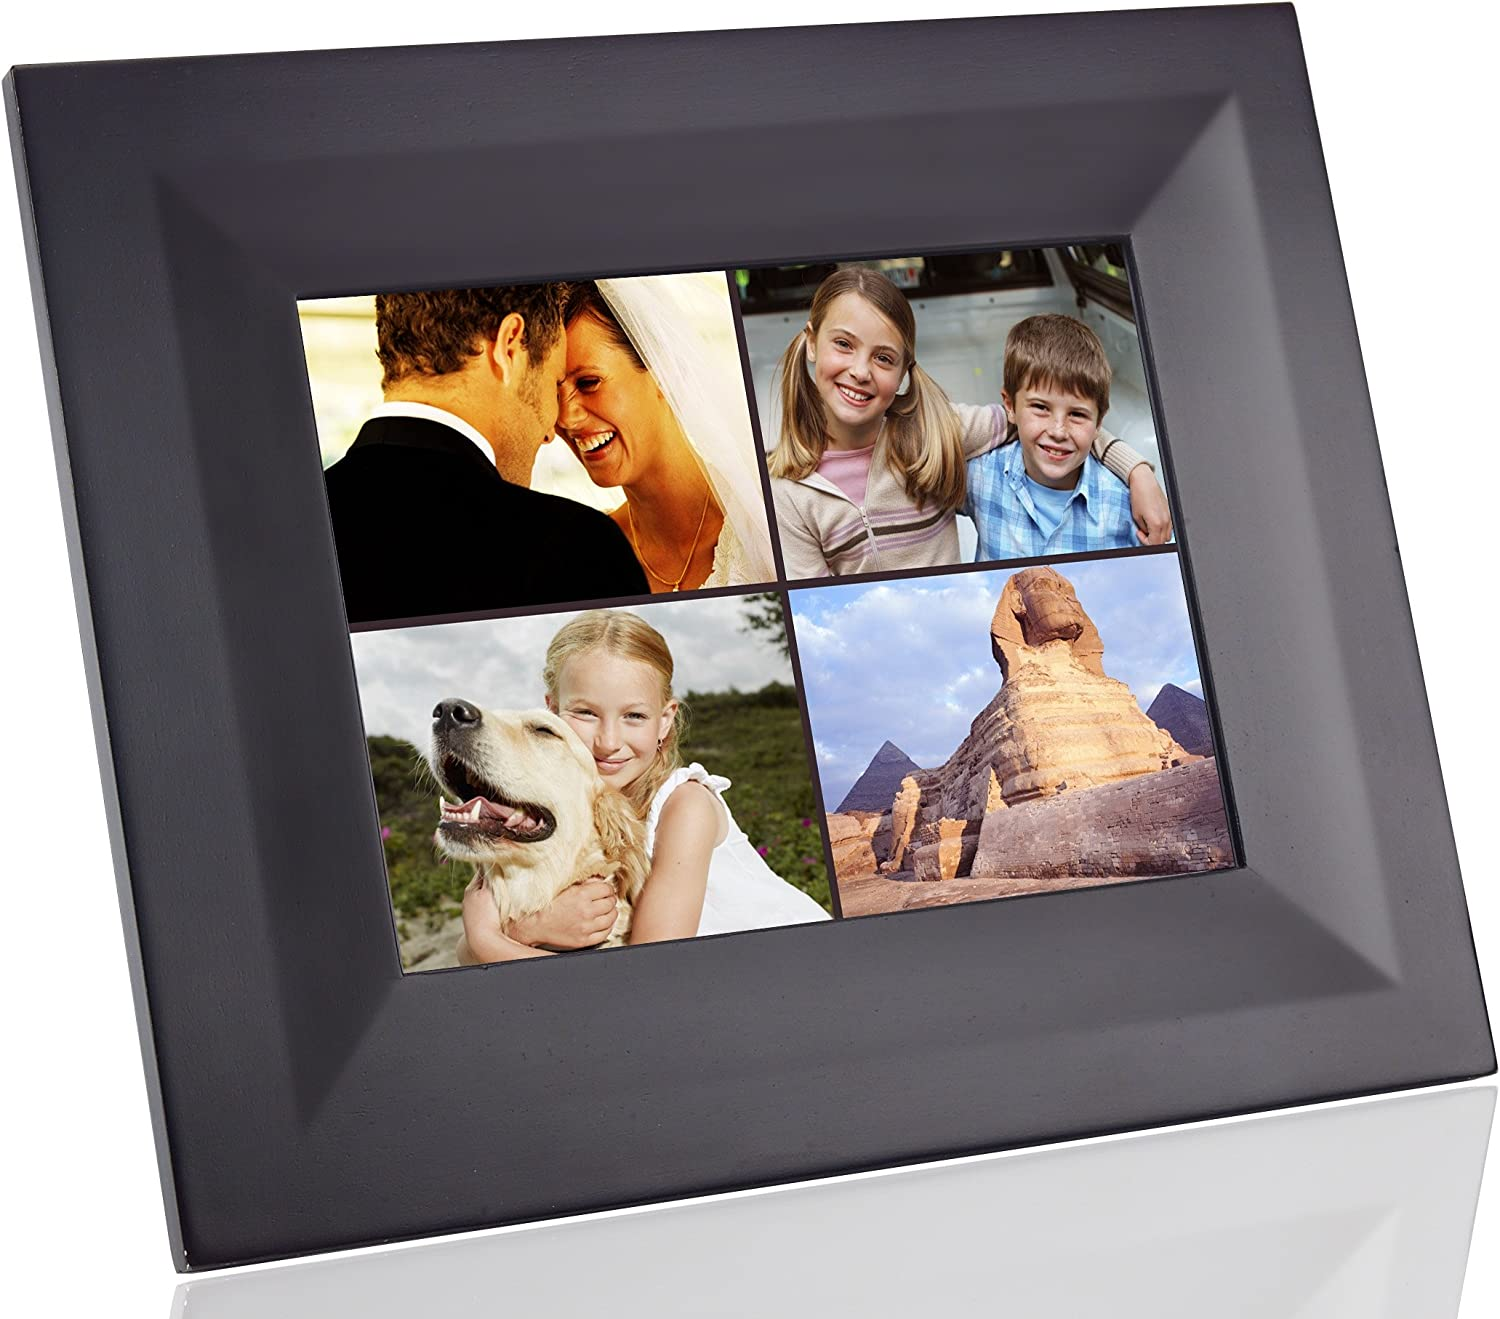 Westinghouse 8-Inch LCD Digital Photo Frame